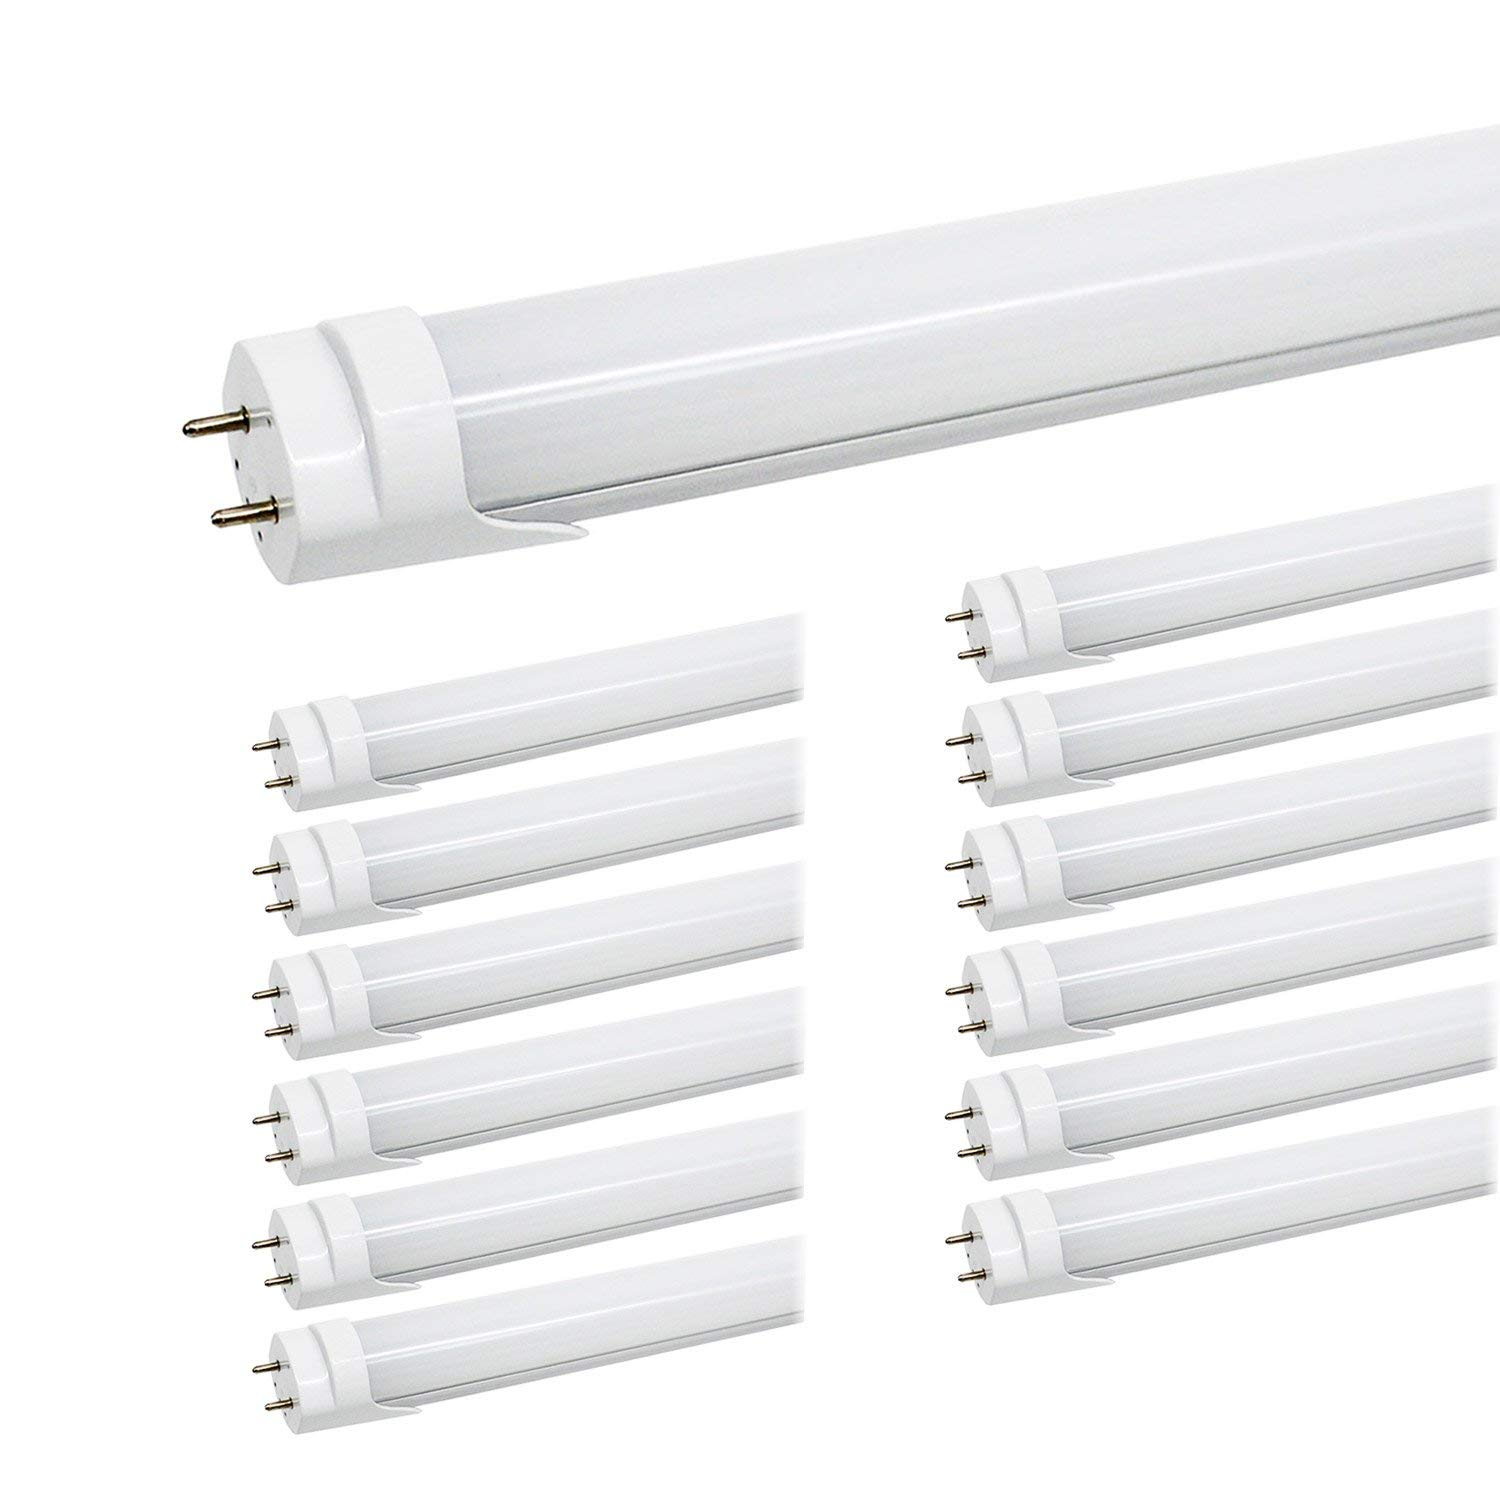 Cheap 18w Daylight 5000k Philips Led Tube Light 1200mm, find